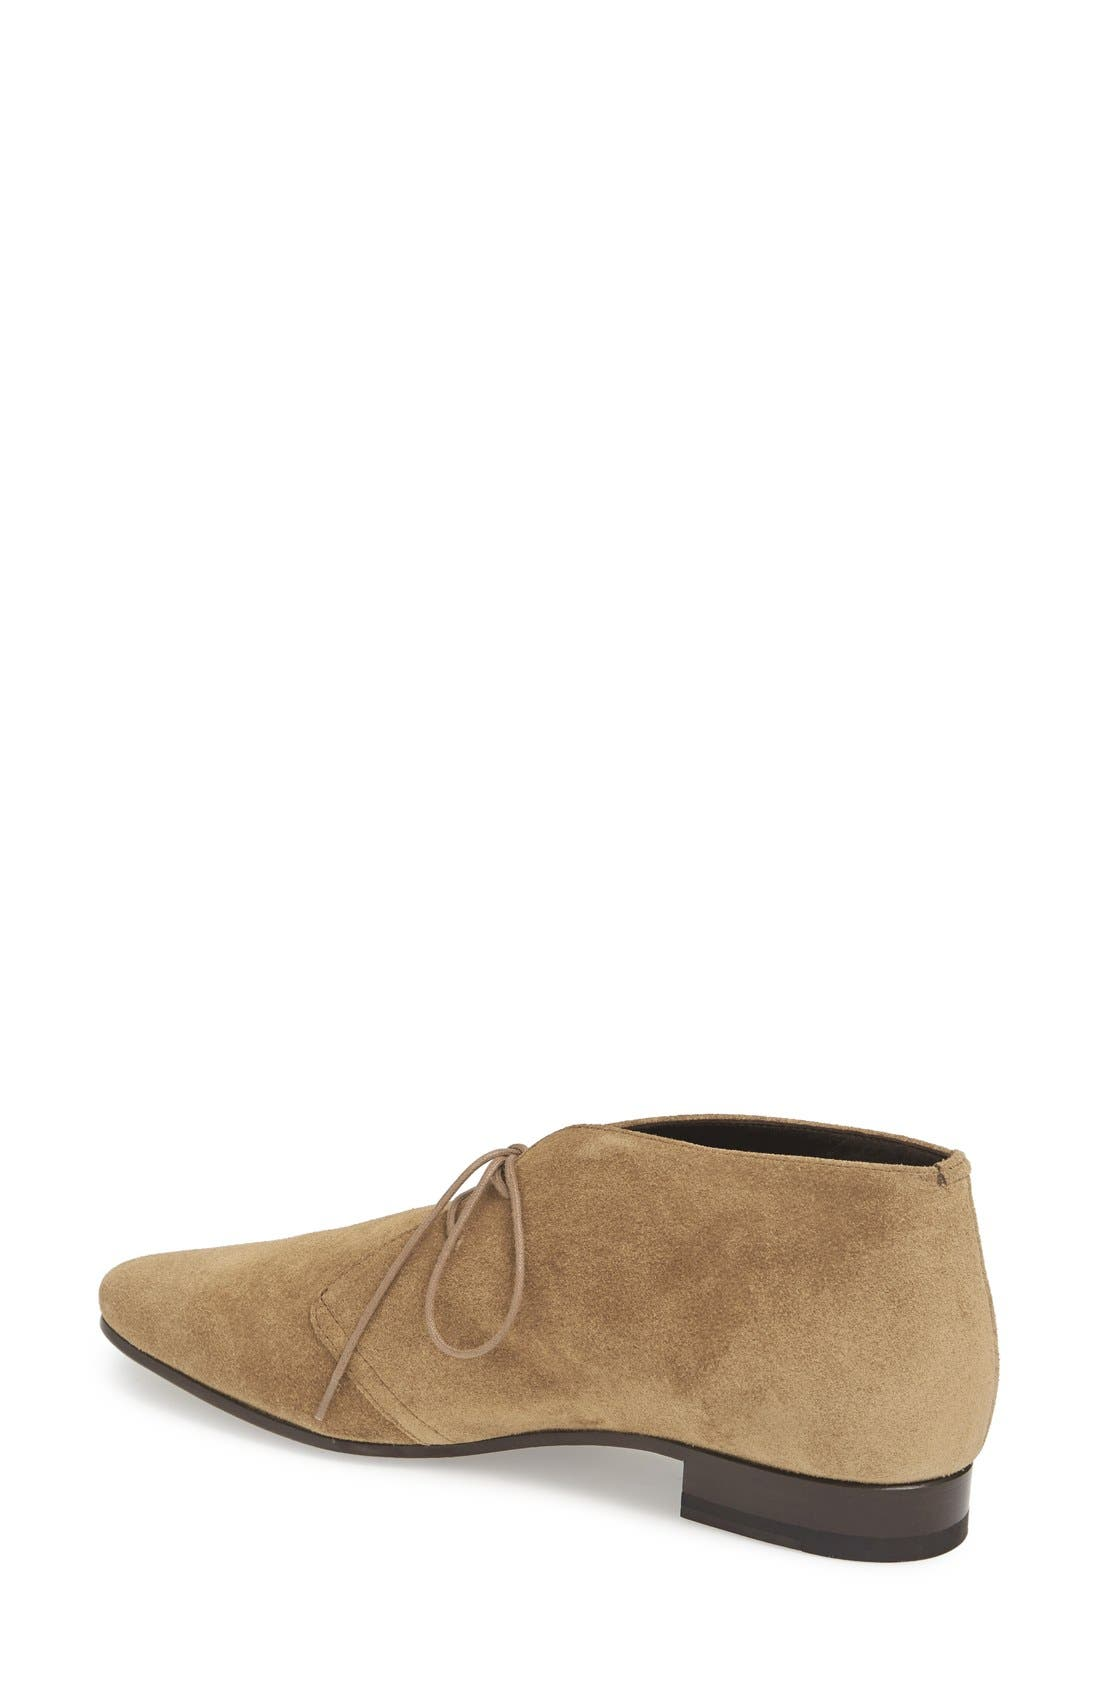 Alternate Image 2  - Saint Laurent 'Lulu' Suede Bootie (Women)